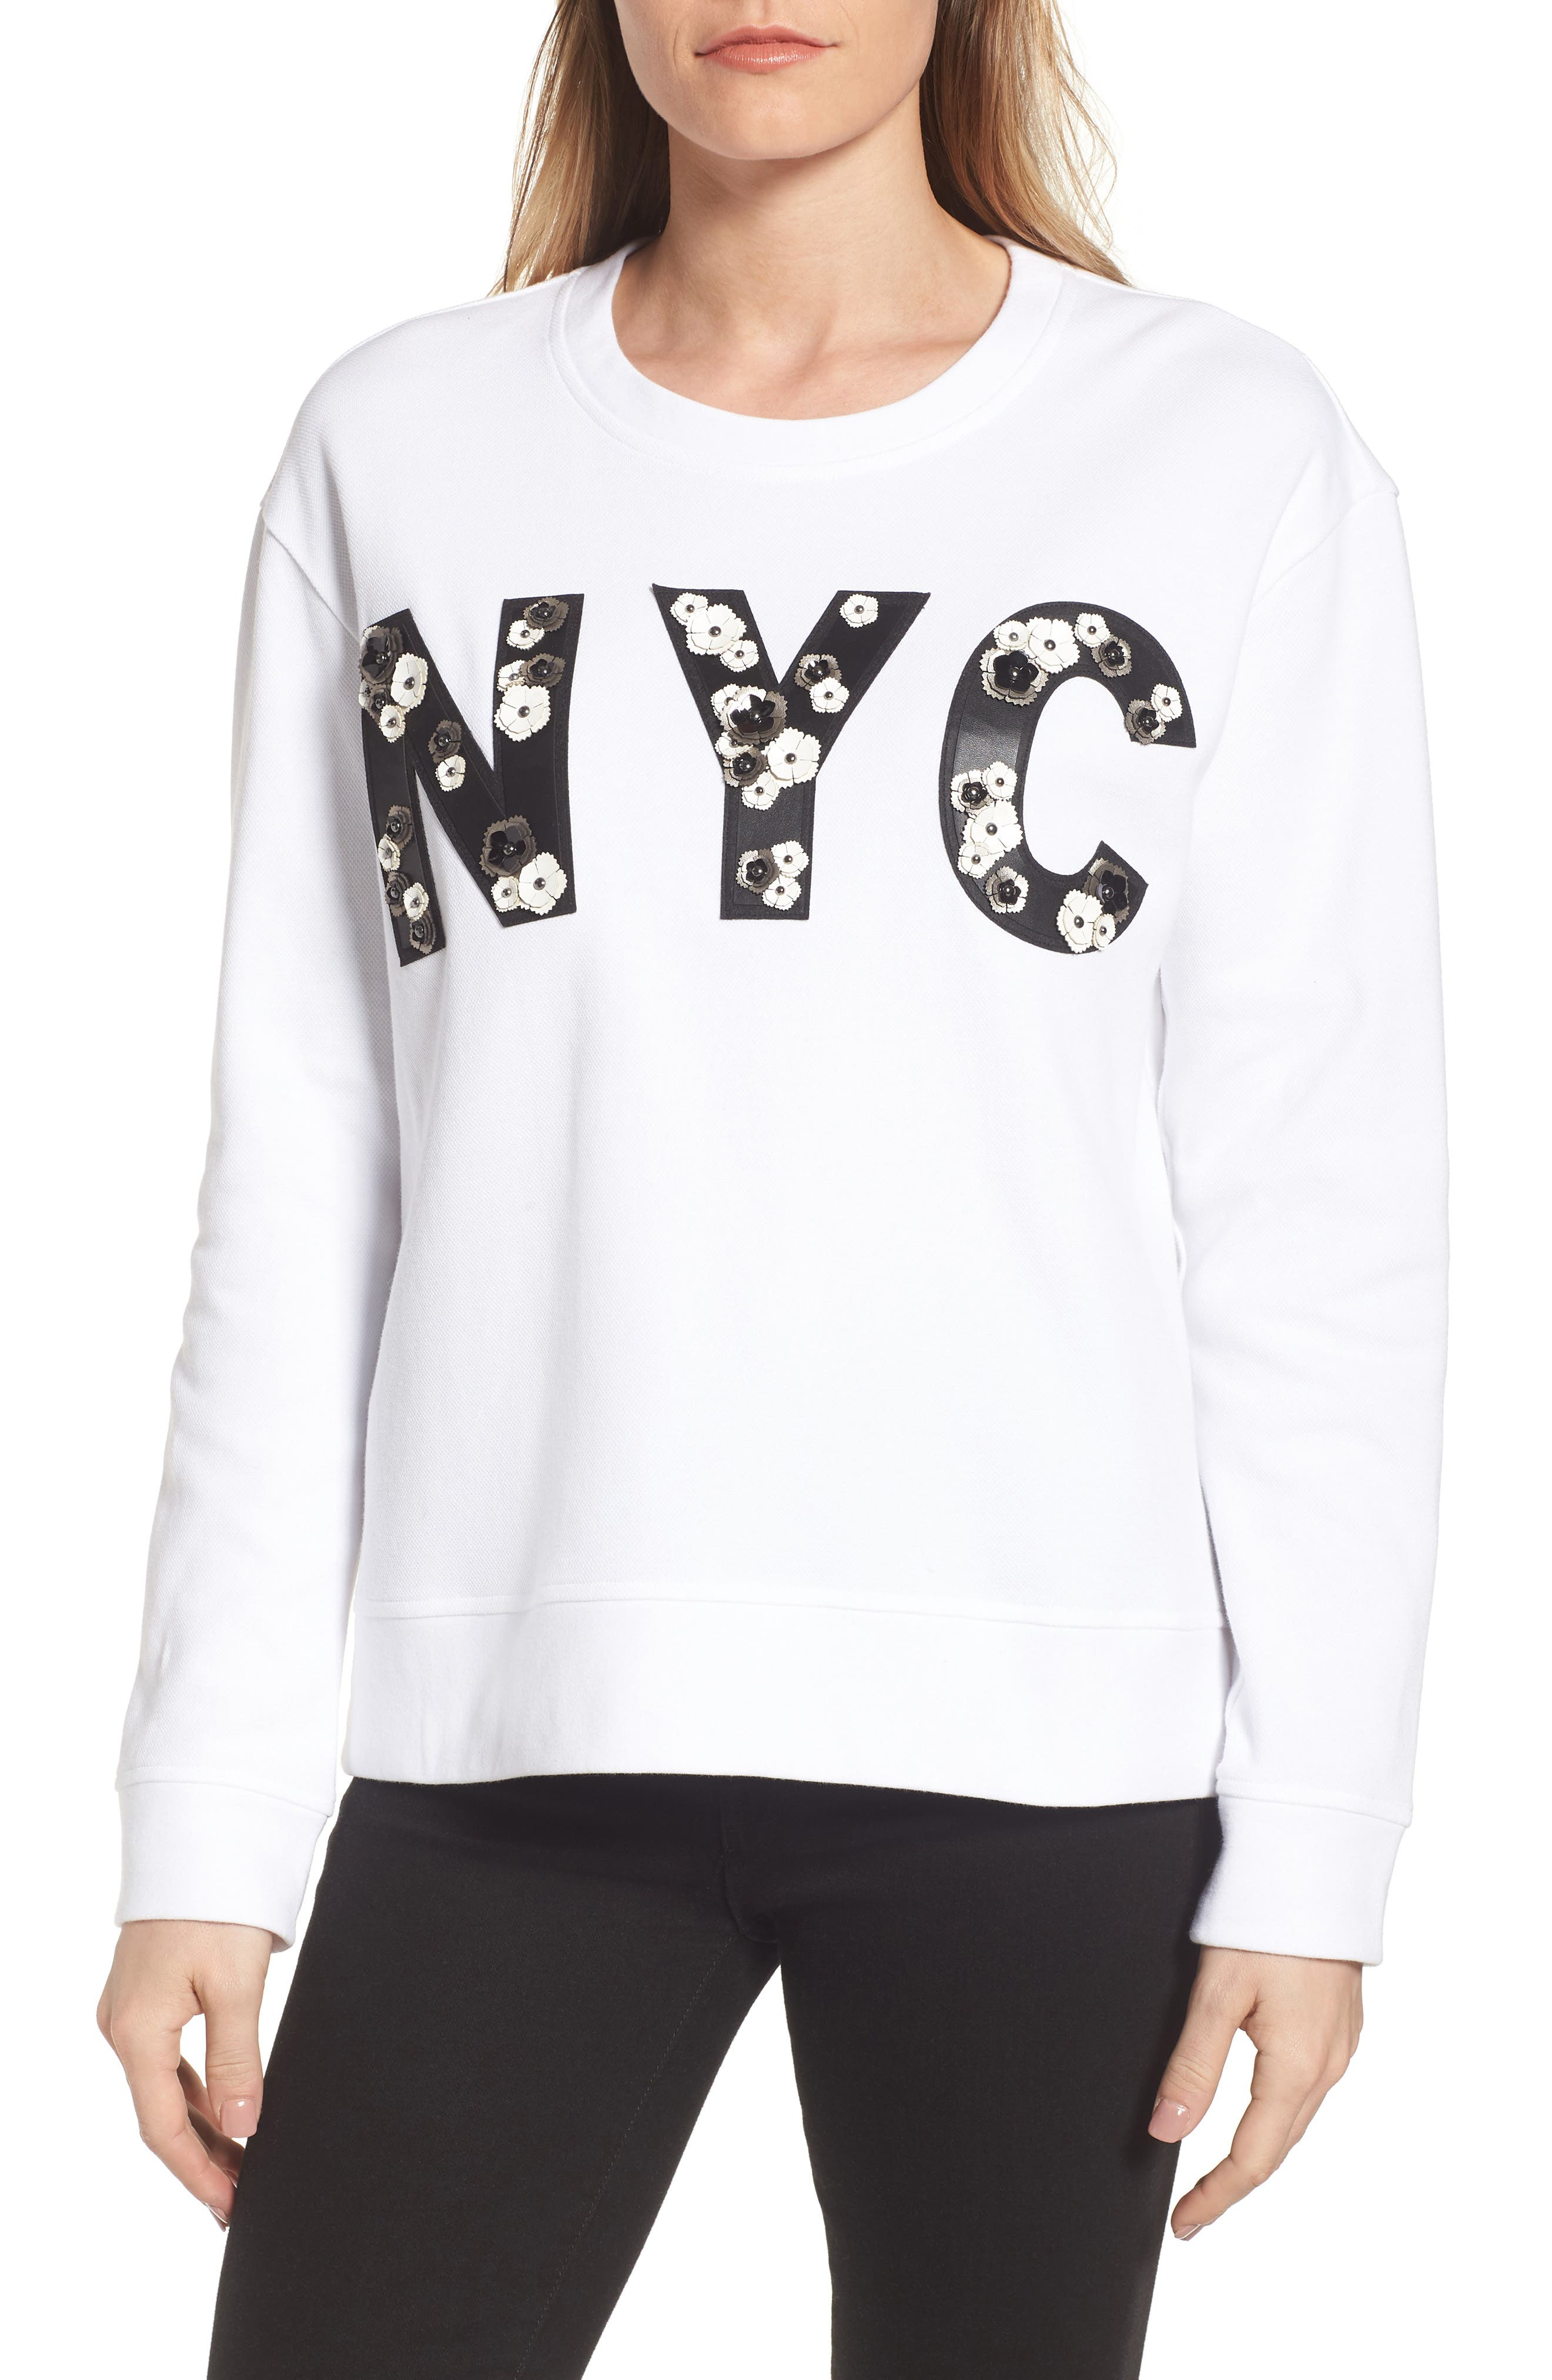 NYC Sweatshirt,                             Main thumbnail 1, color,                             White